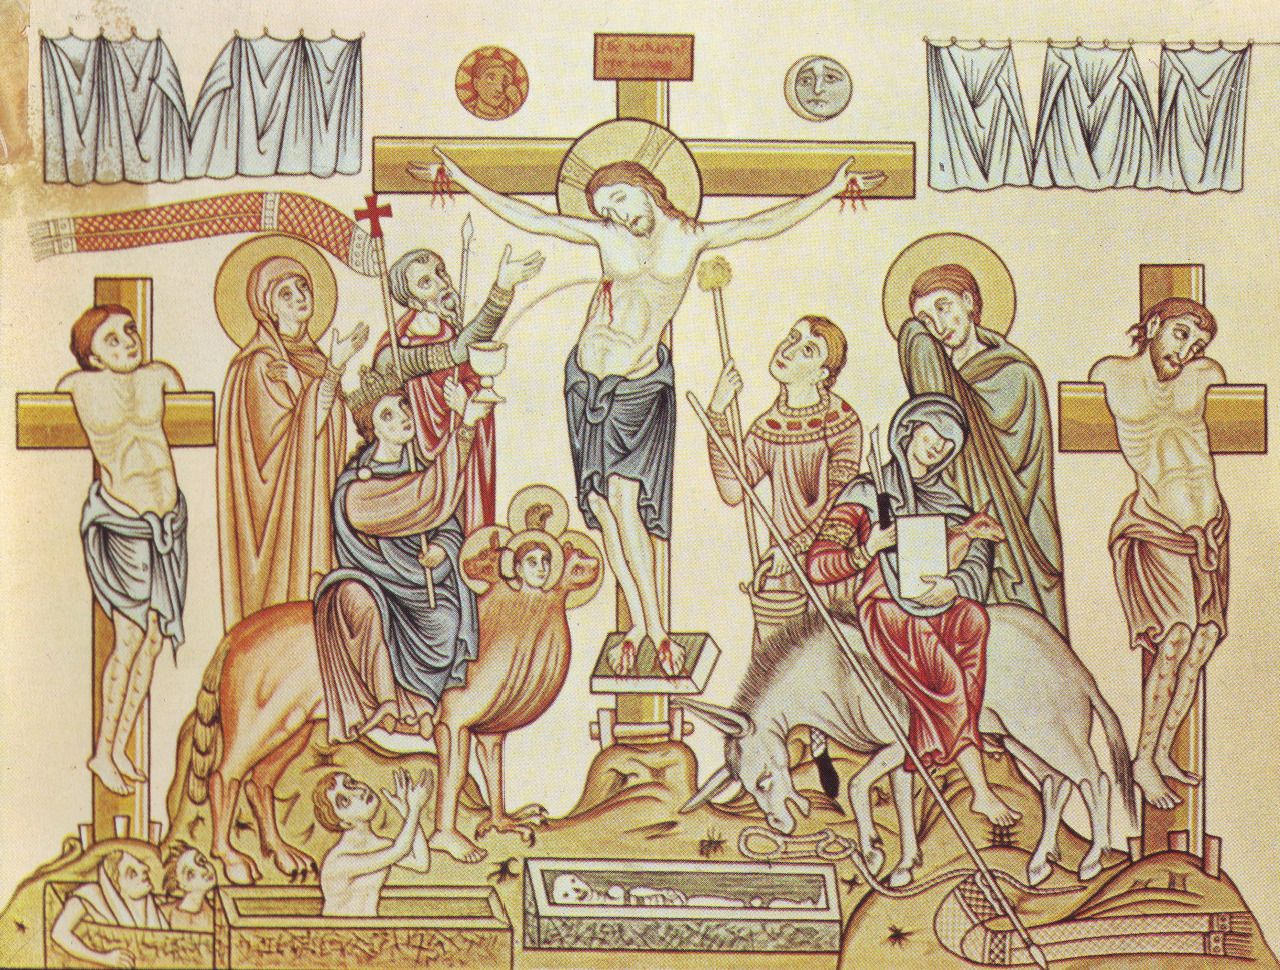 theraccolta crucifixion of jesus of nazareth medieval